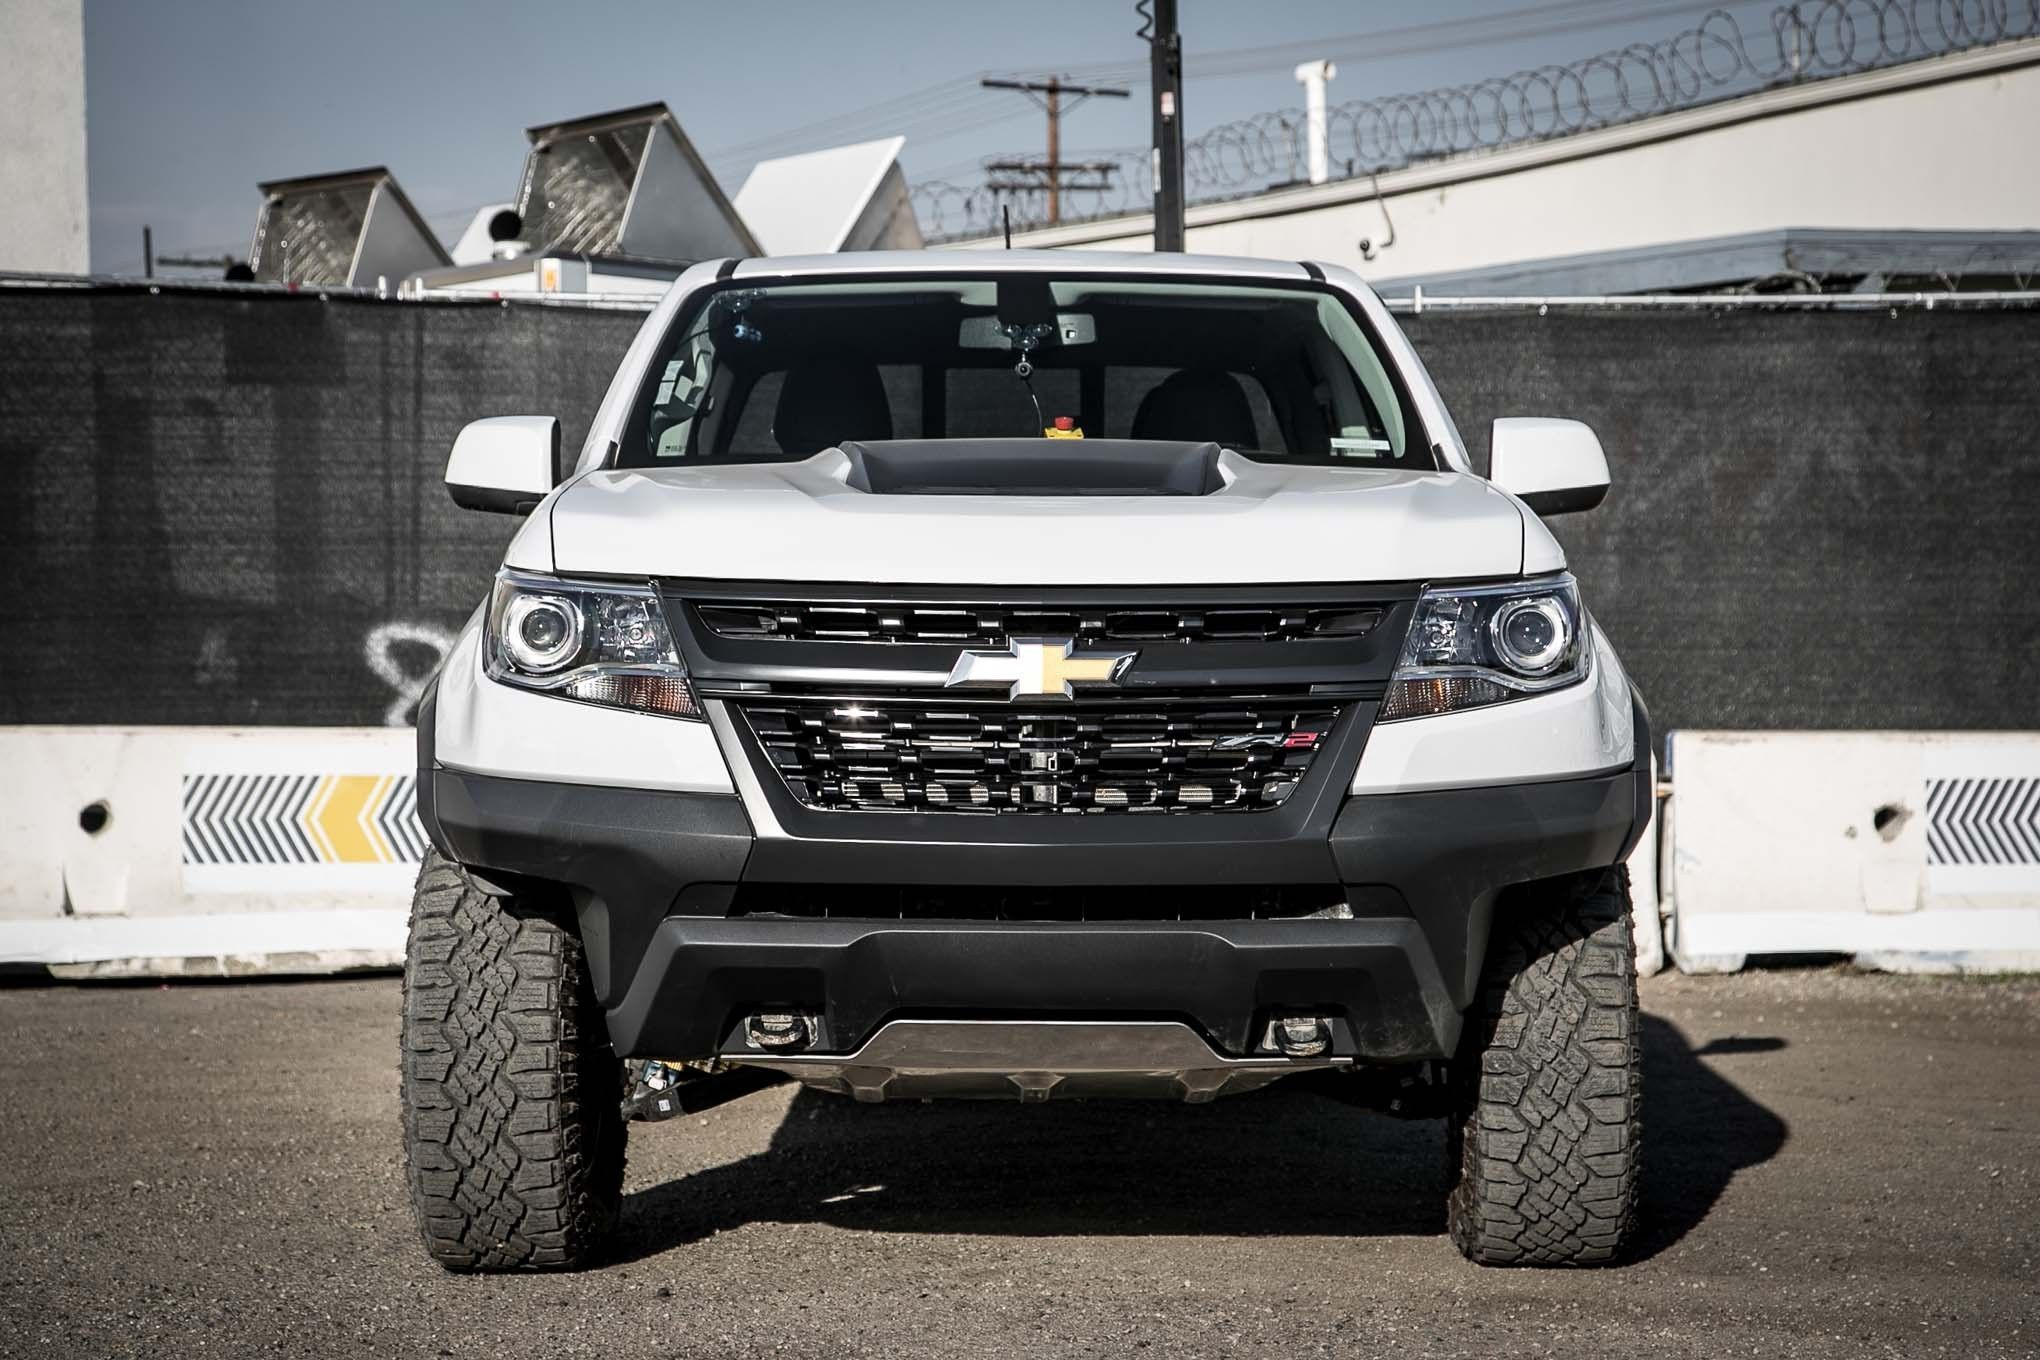 Colorado Zr2 Release Date >> 2019 Chevrolet Colorado Zr2 Release Date All Car Club Pinterest